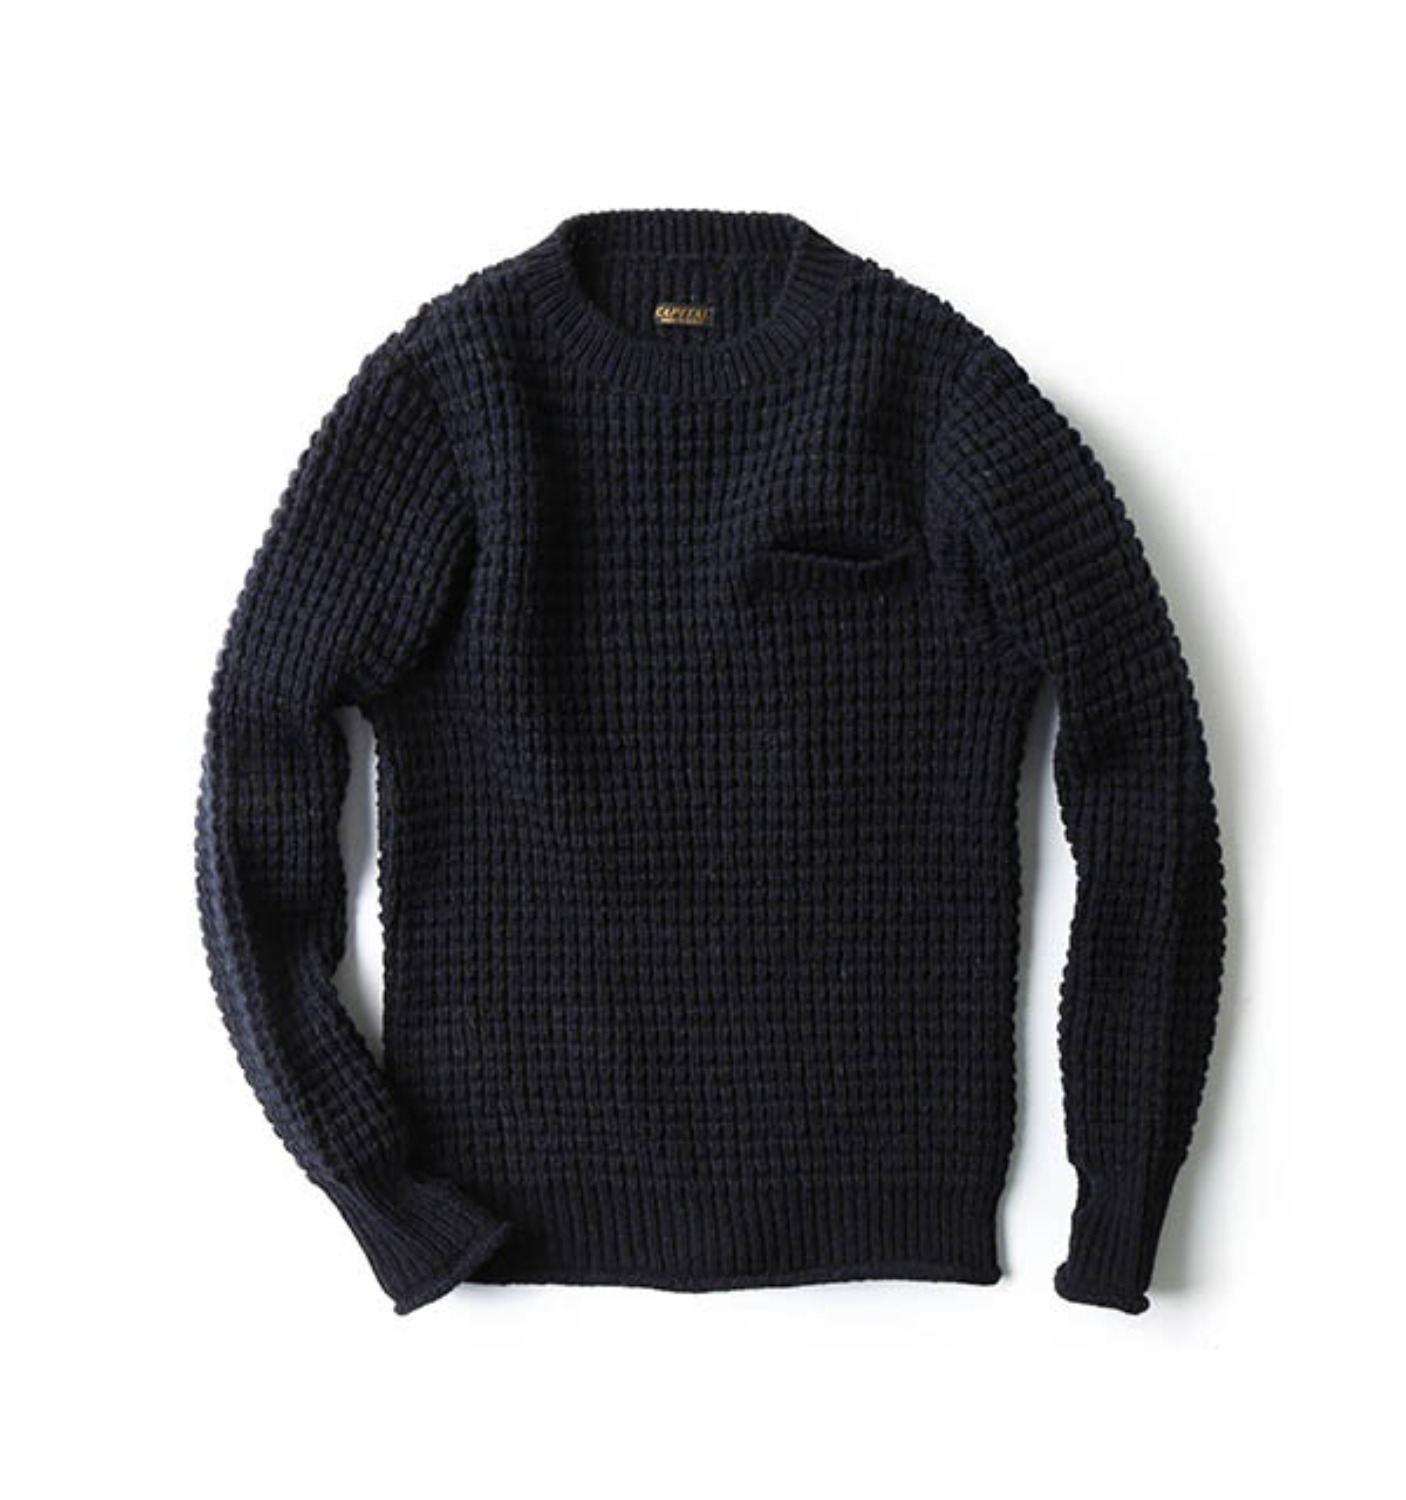 5G Wool Waffle Crew neck Sweater navy